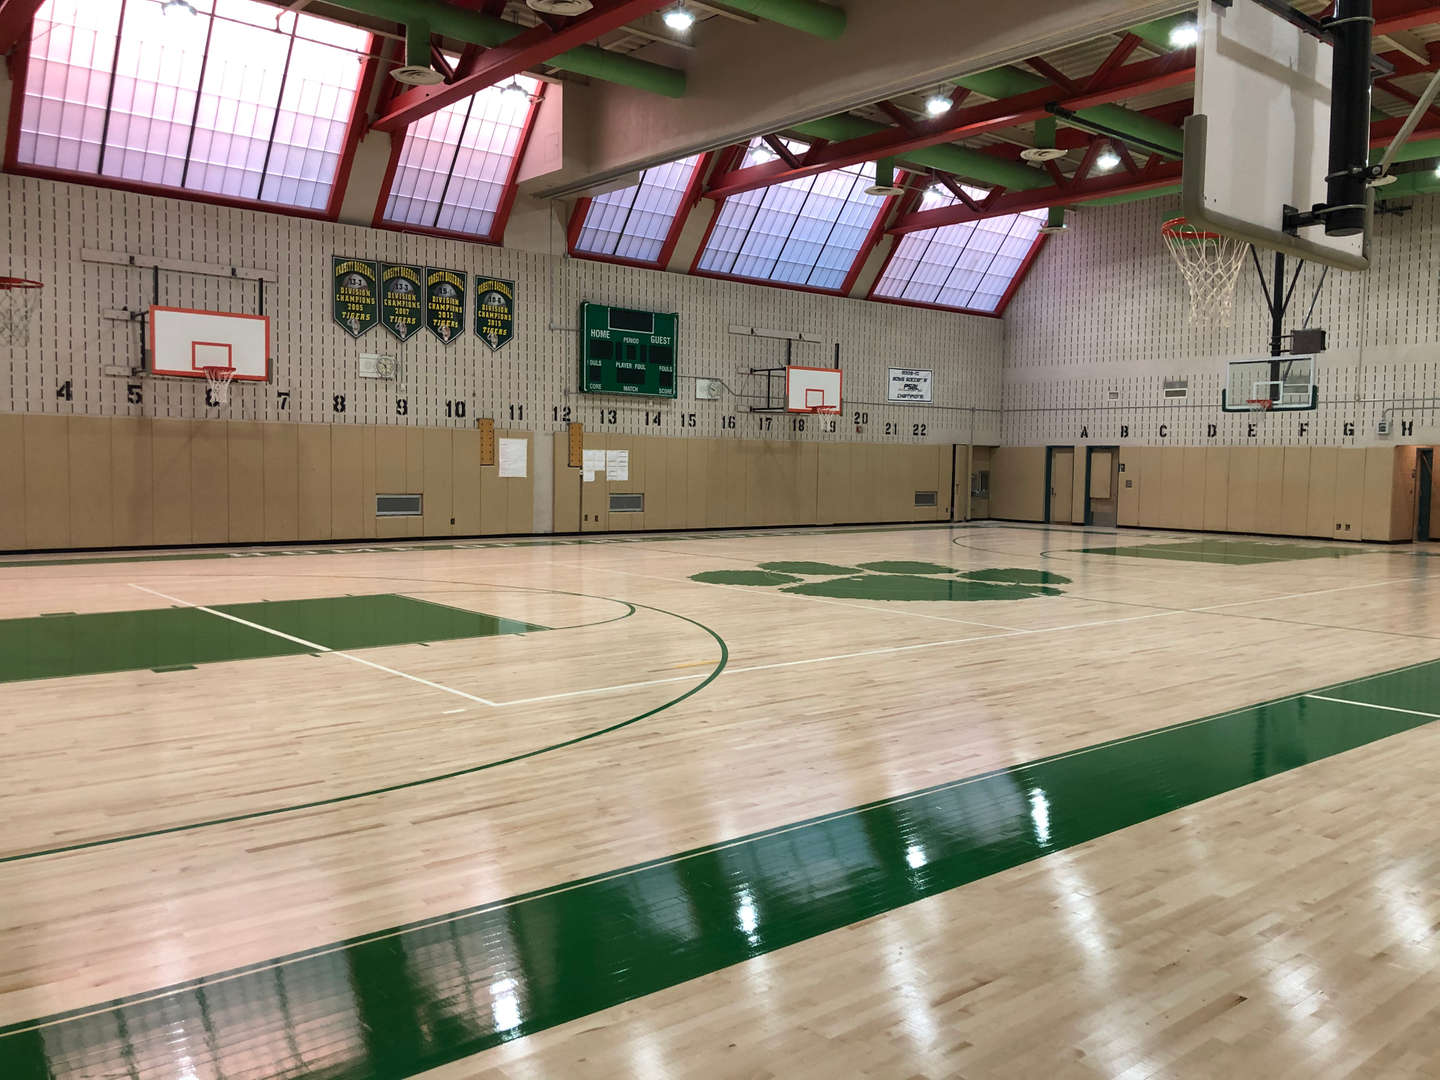 Gymnasium floor and the basketball court